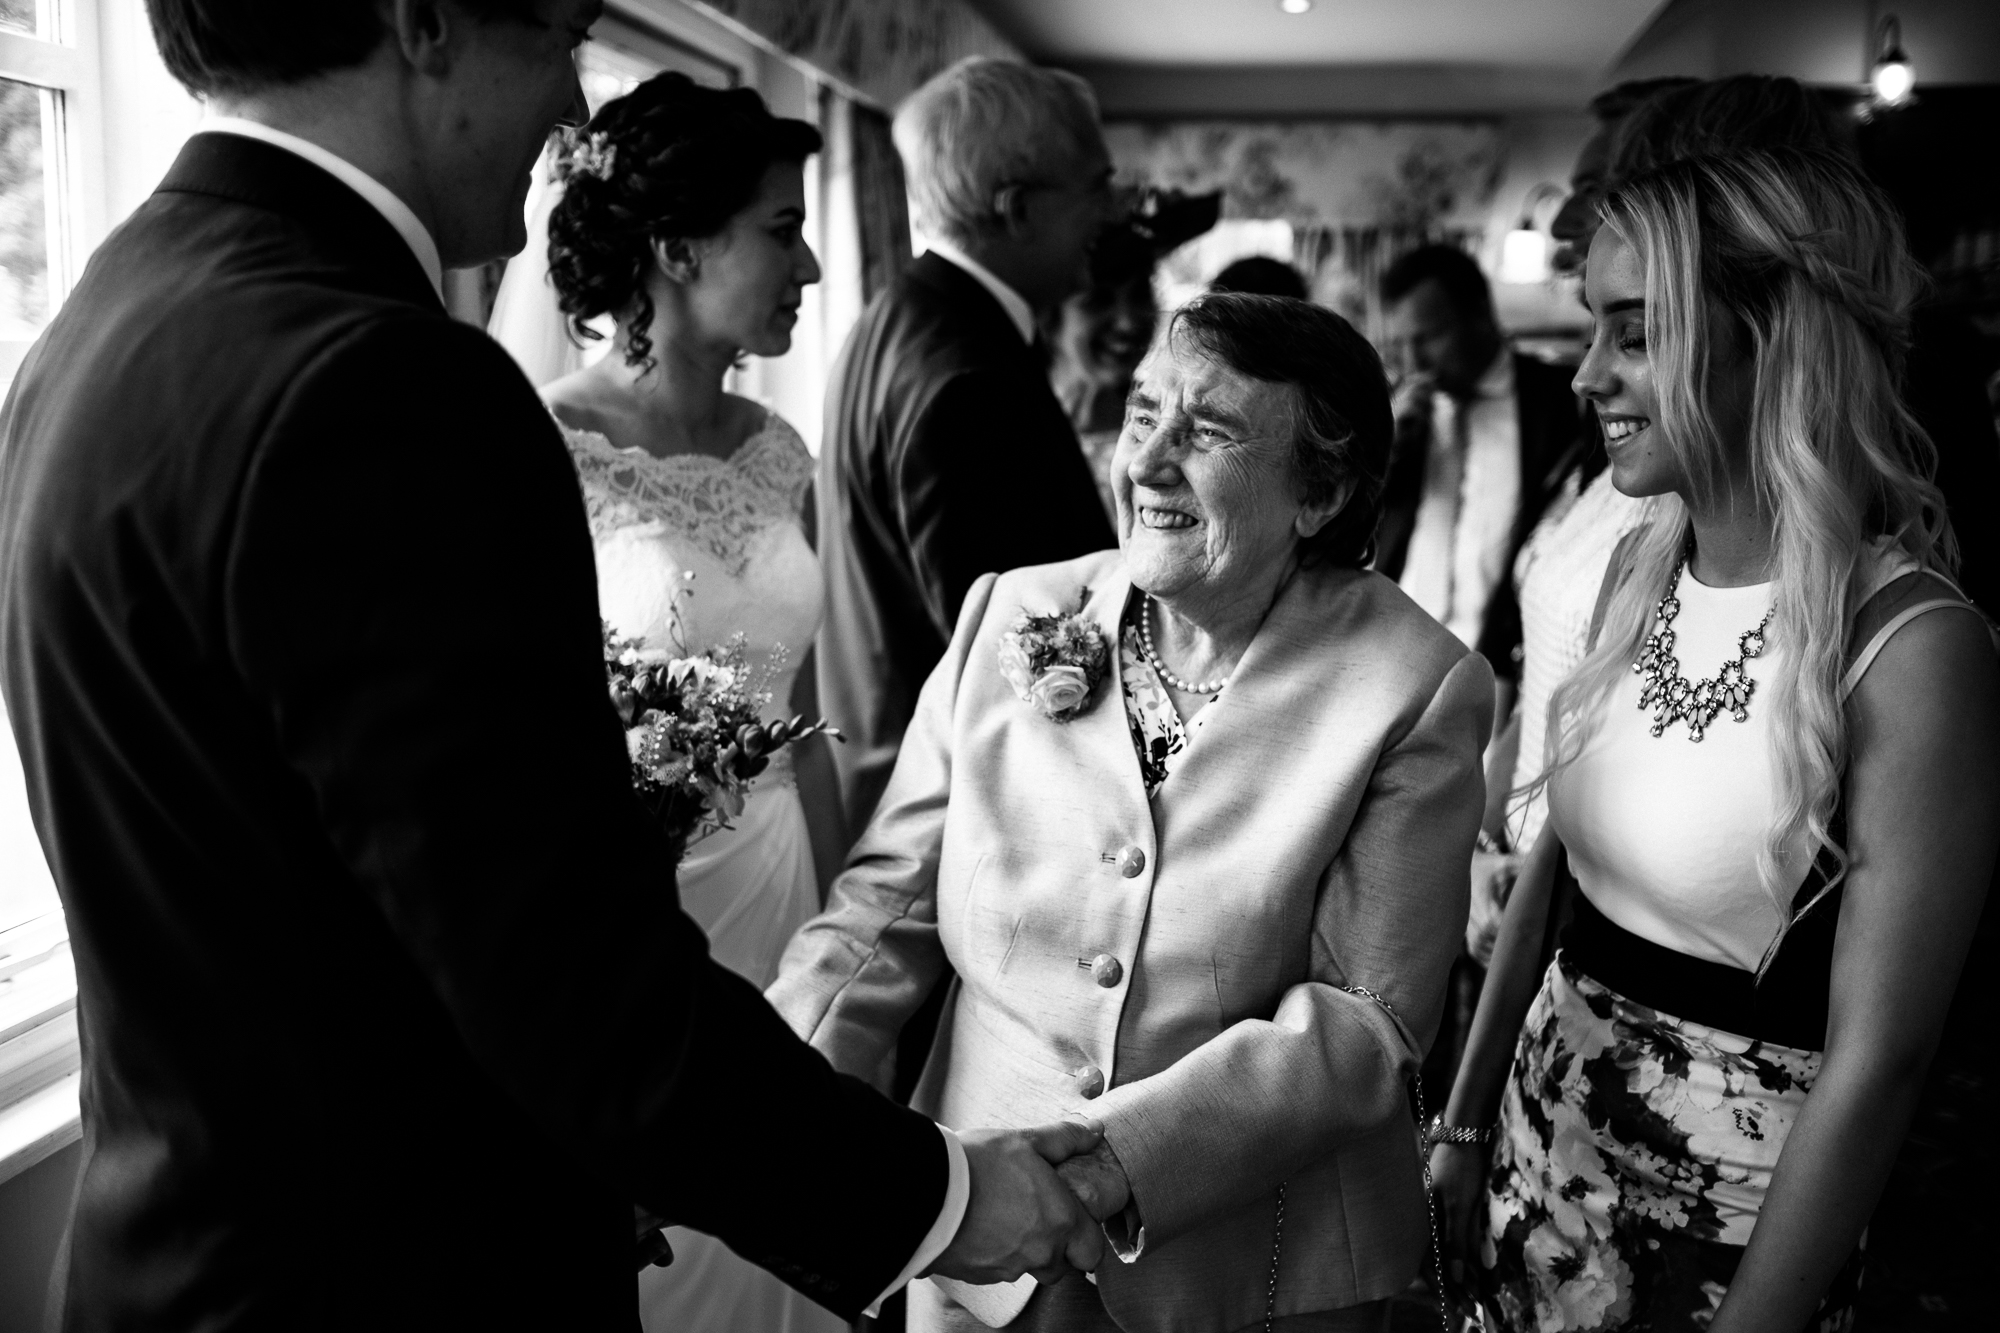 Rustic Country Wedding - The Swettenham Arms, Cheshire Lavender Field - Ceilidh - Jenny Harper Photography-48.jpg